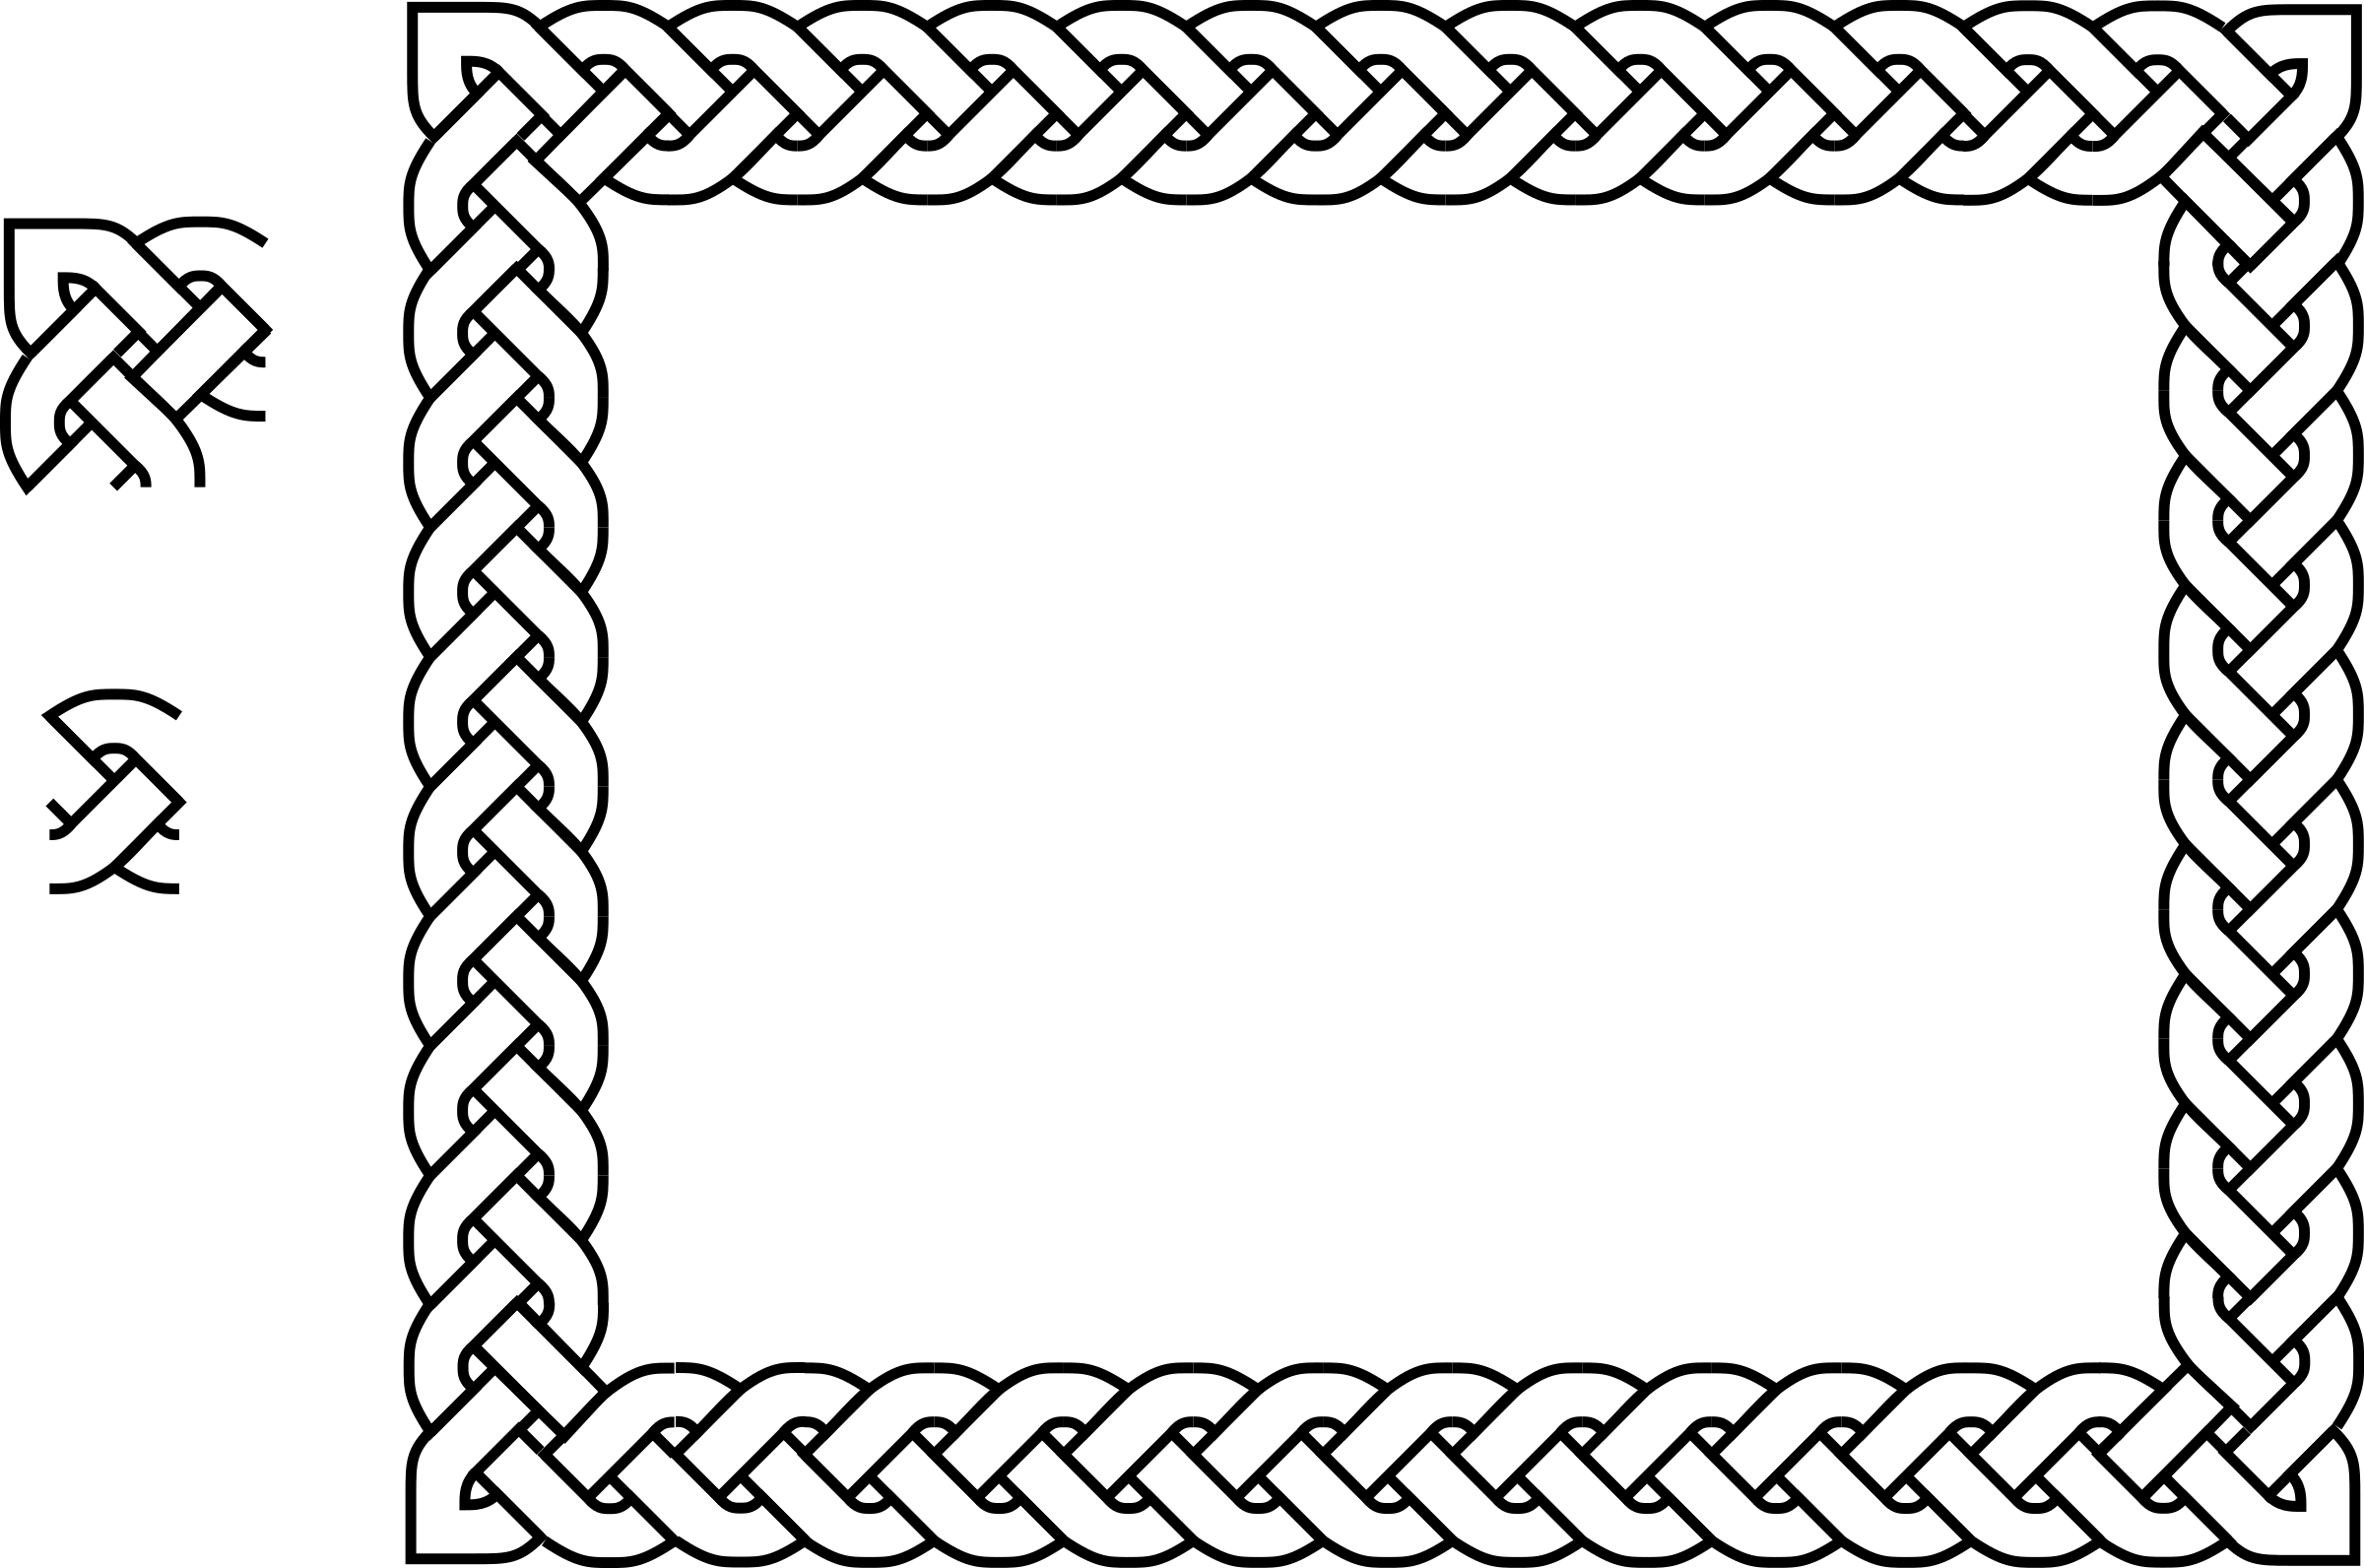 5 Outsanding Free Celtic Borders To Use